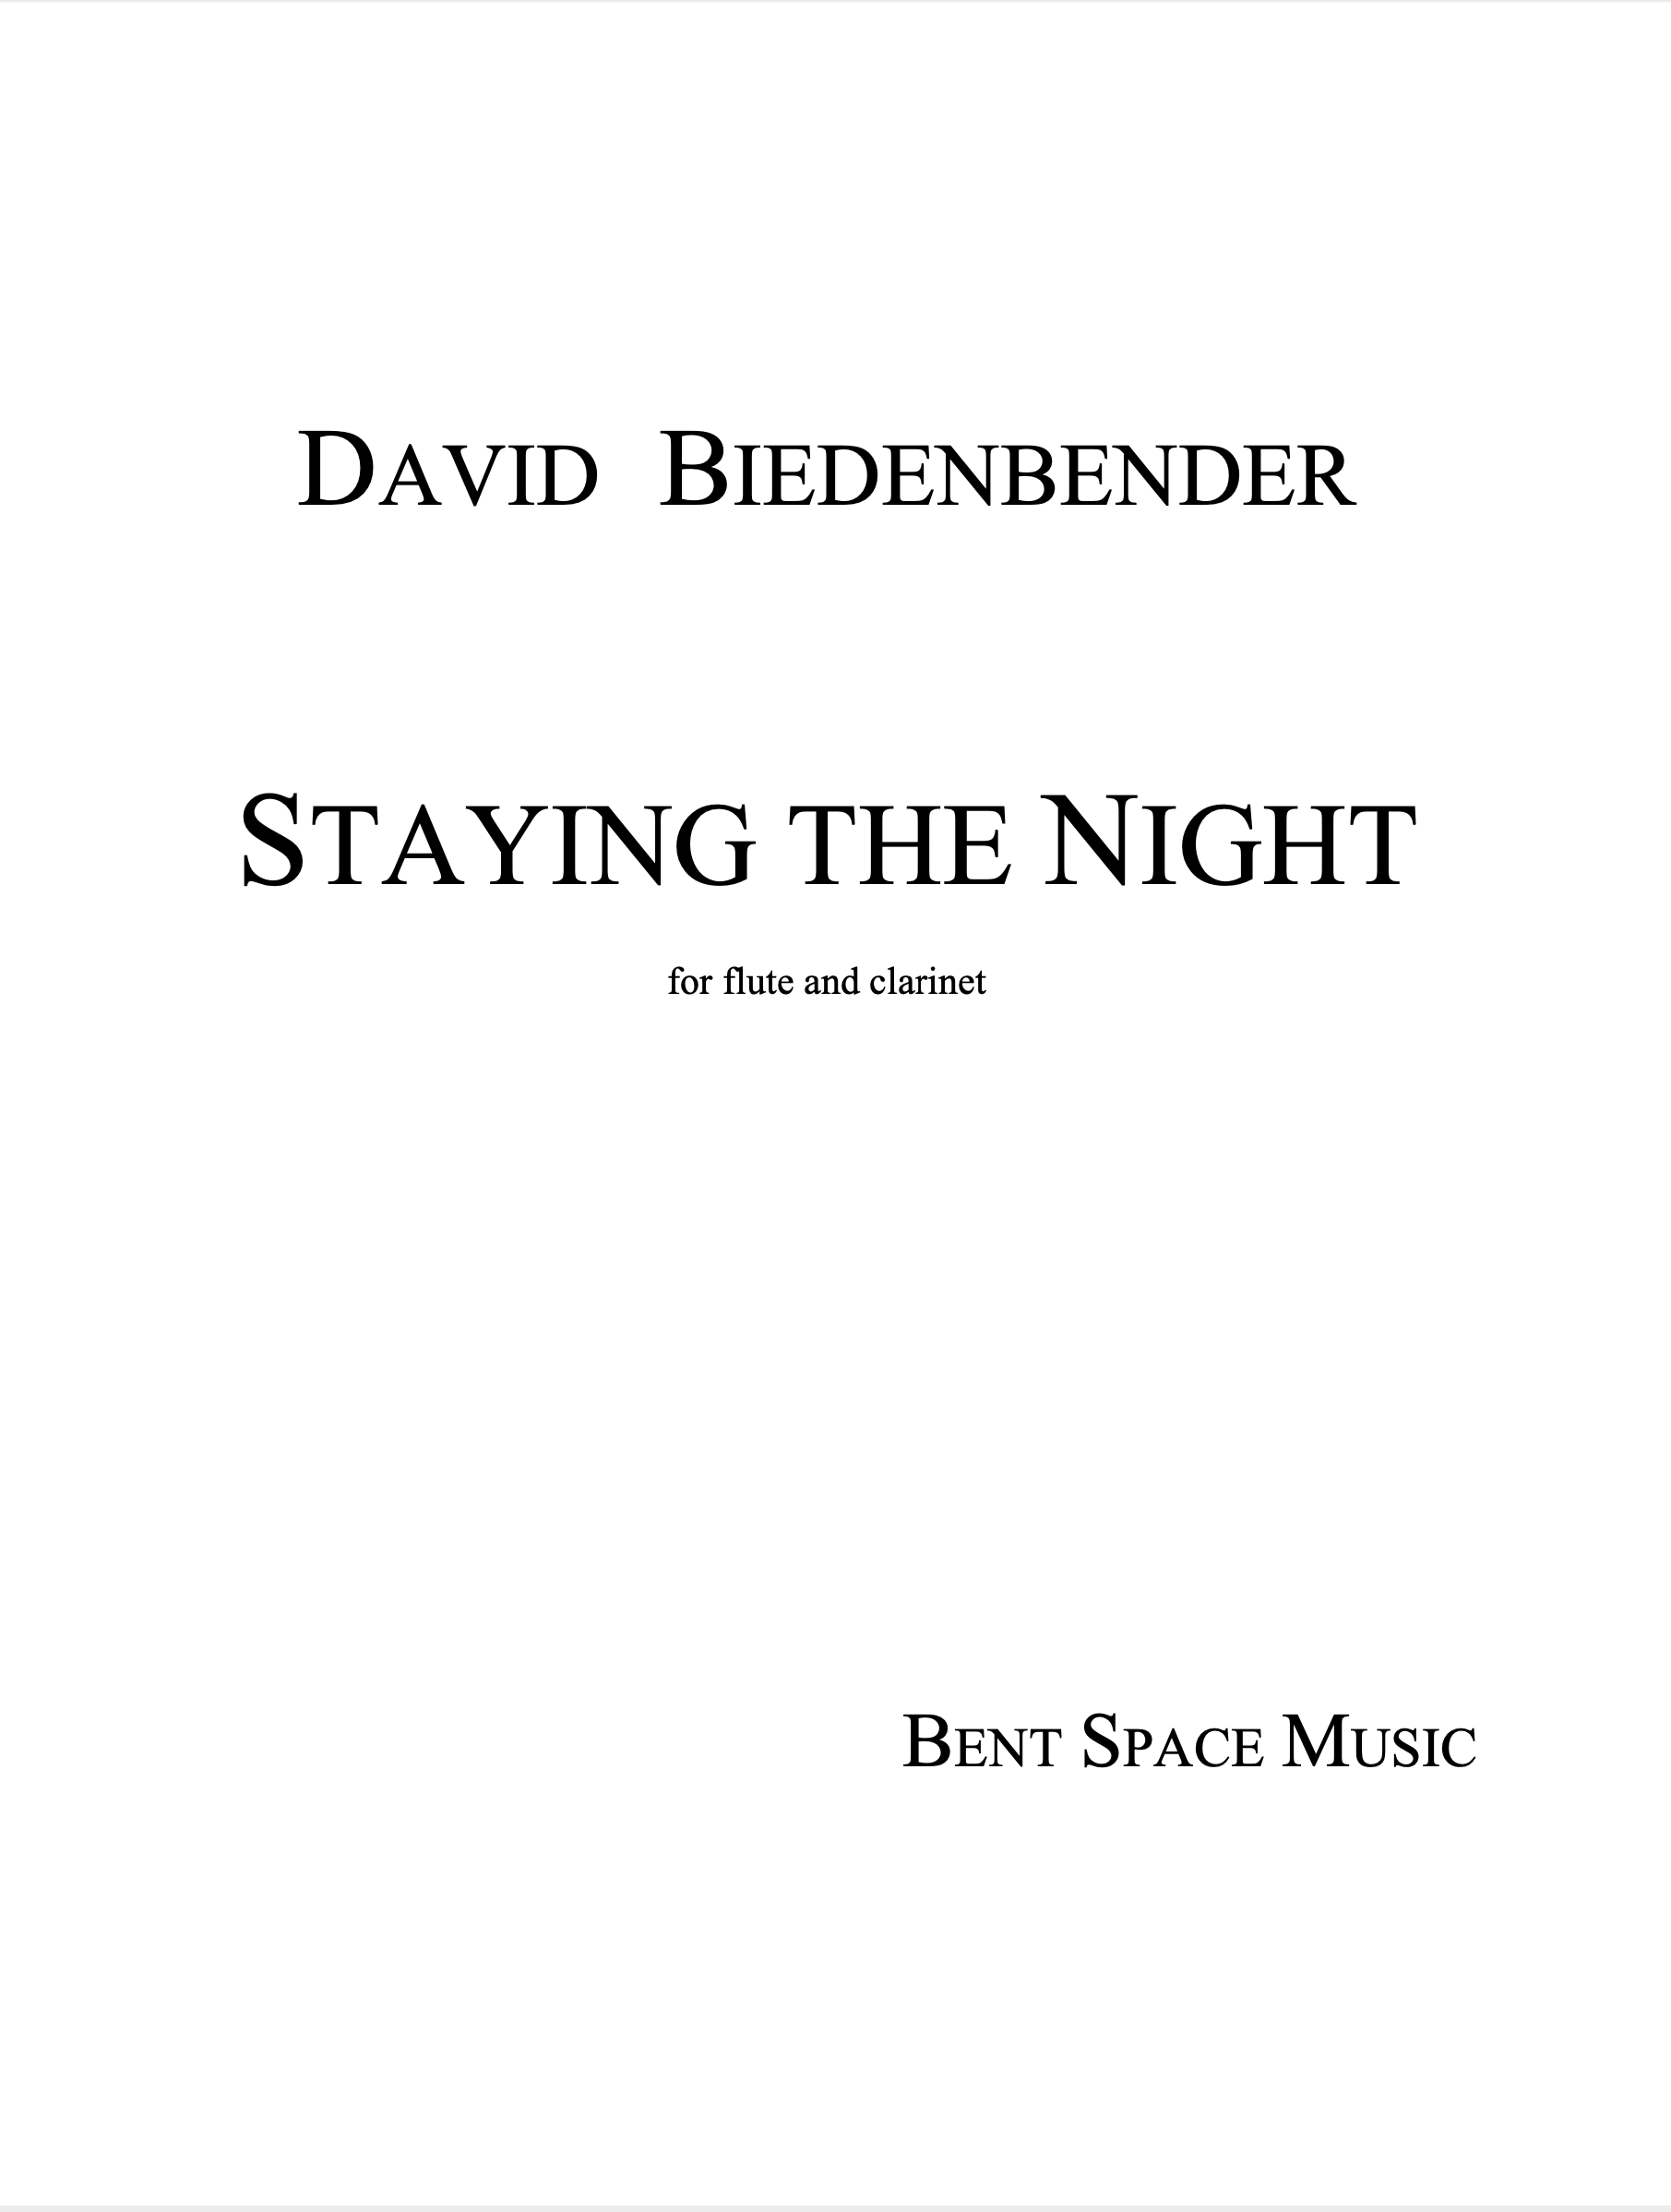 Staying The Night (Flute/Clarinet Version) by David Biedenbender